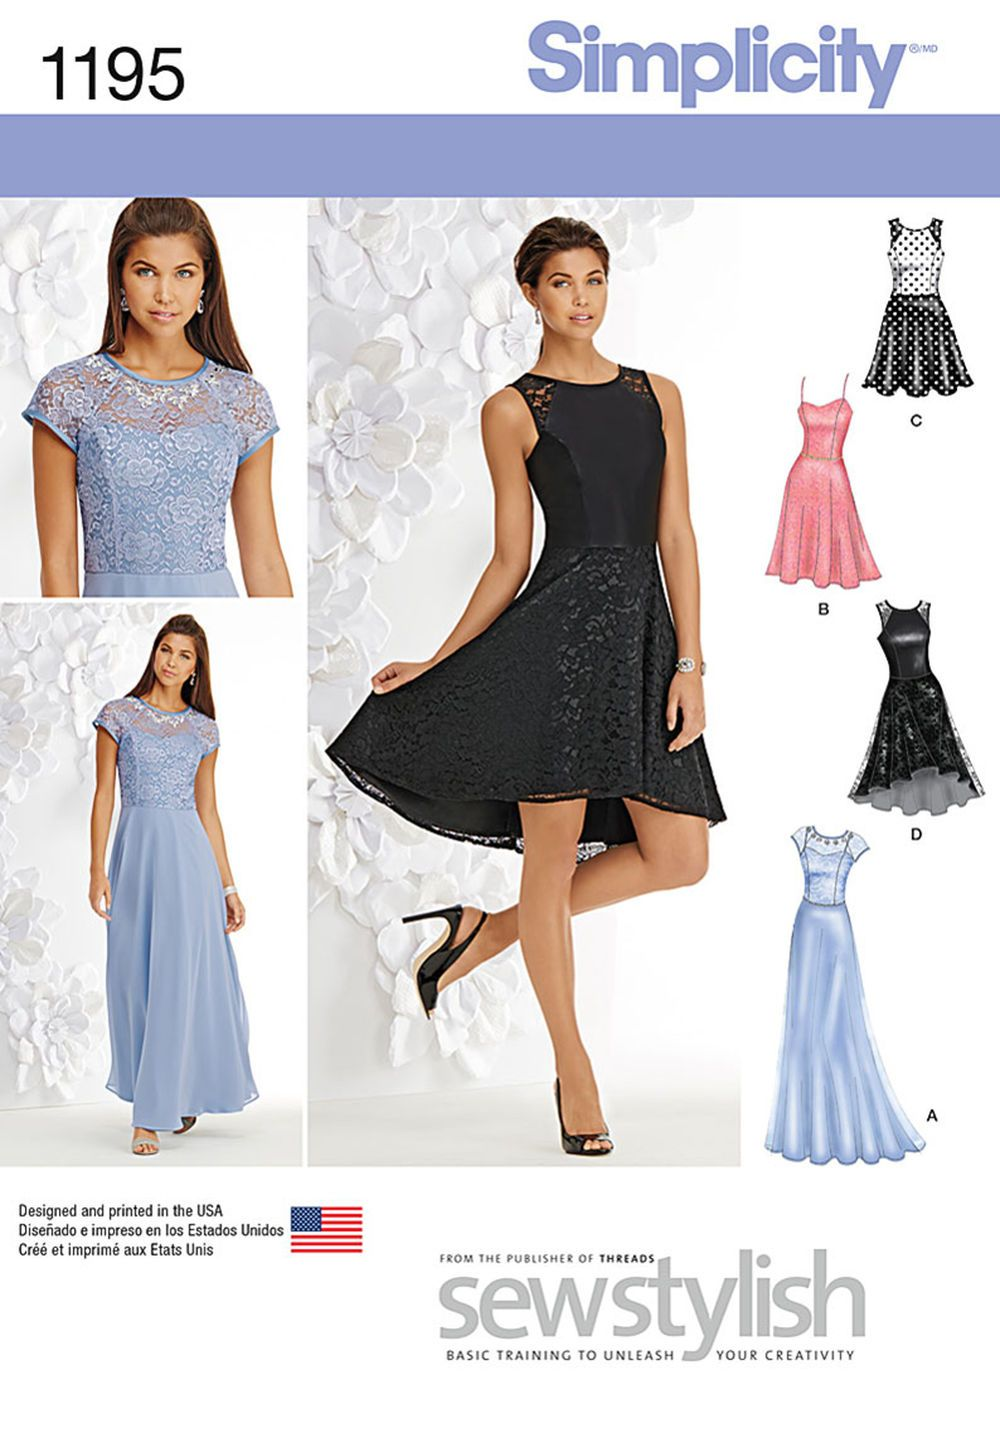 Misses sew stylish dress can be made floor length with bodice and high low prom dresses 2018 misses sew stylish dress can be made floor length with bodice and skirt overlays knee length with straps and sleeveless about jeuxipadfo Image collections